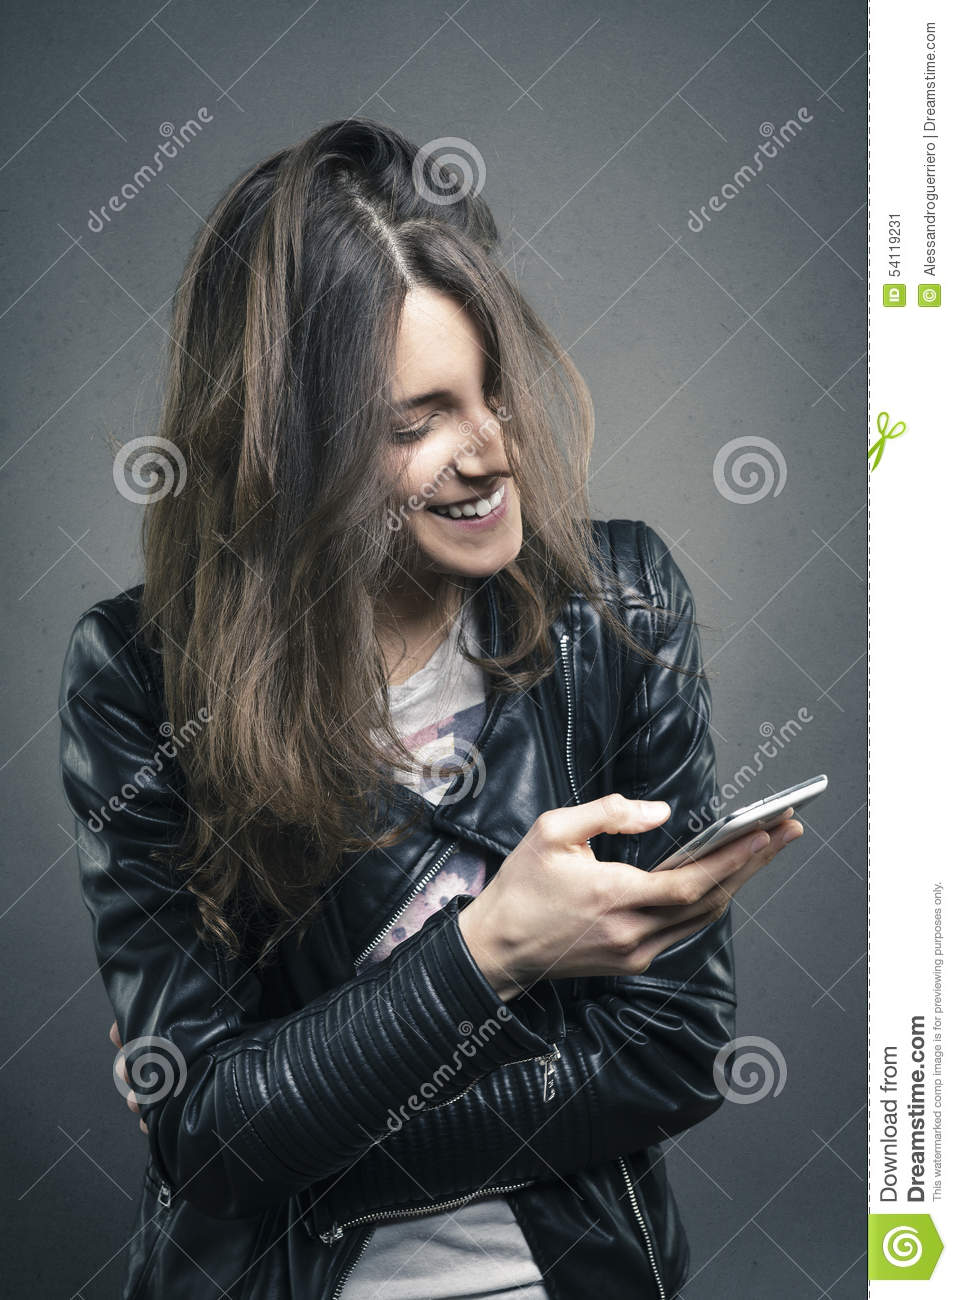 Smiling young girl looking at phone with amused emotion